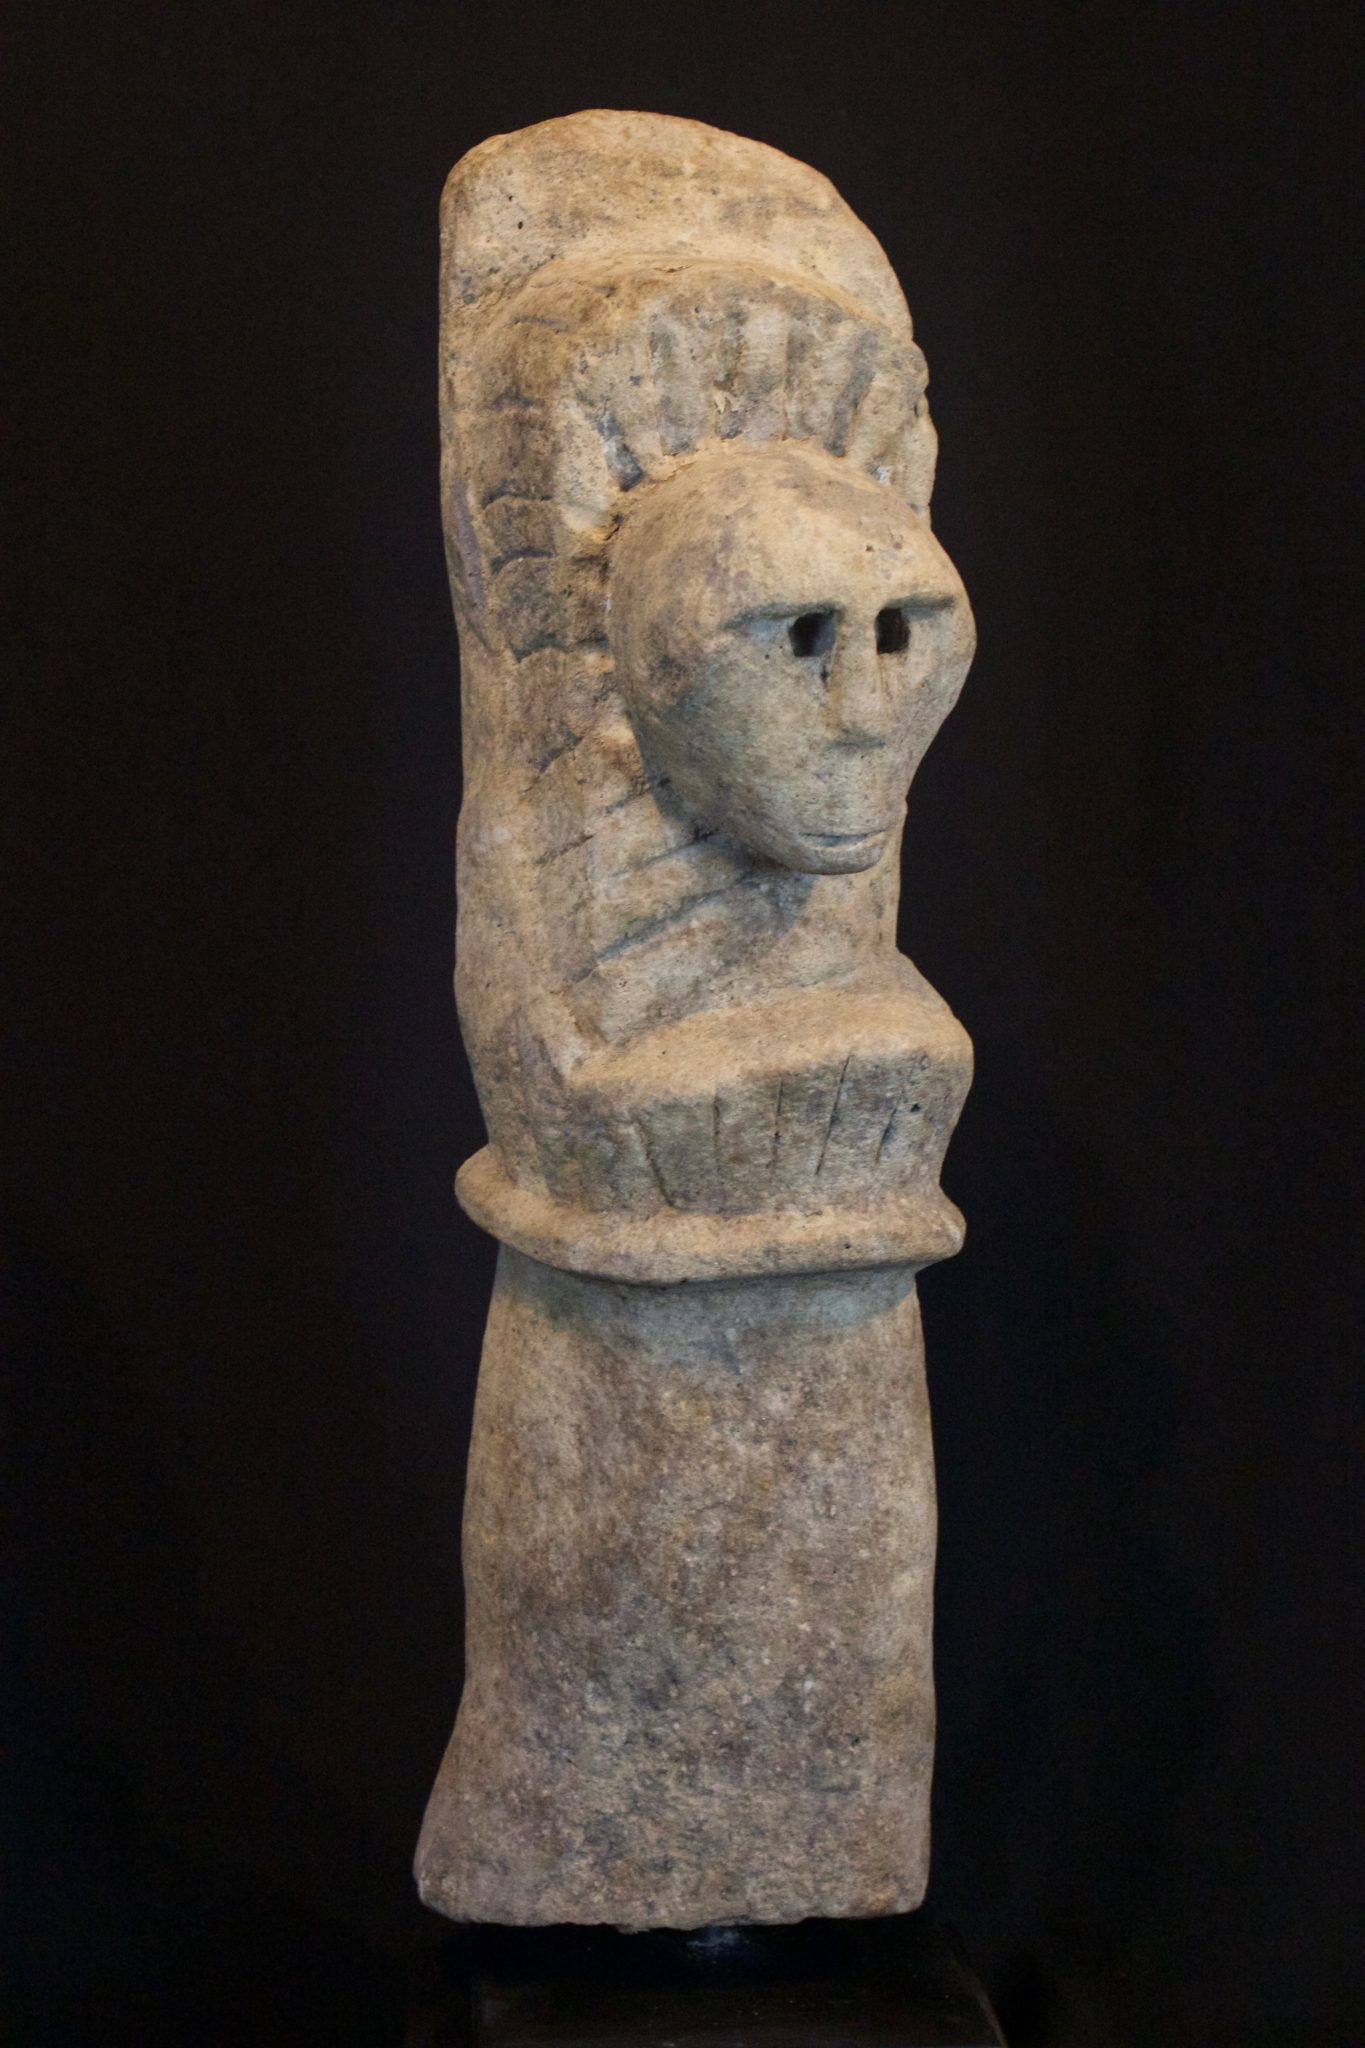 "'Katoda' - God Effigy, Timor Island, Lesser Sunda Islands, Indonesia, Early 20th c, Stone. Shaman would pray to a Katoda to predict natural disasters. 19"" x 5 ½"" x 6 ½"", $1600."